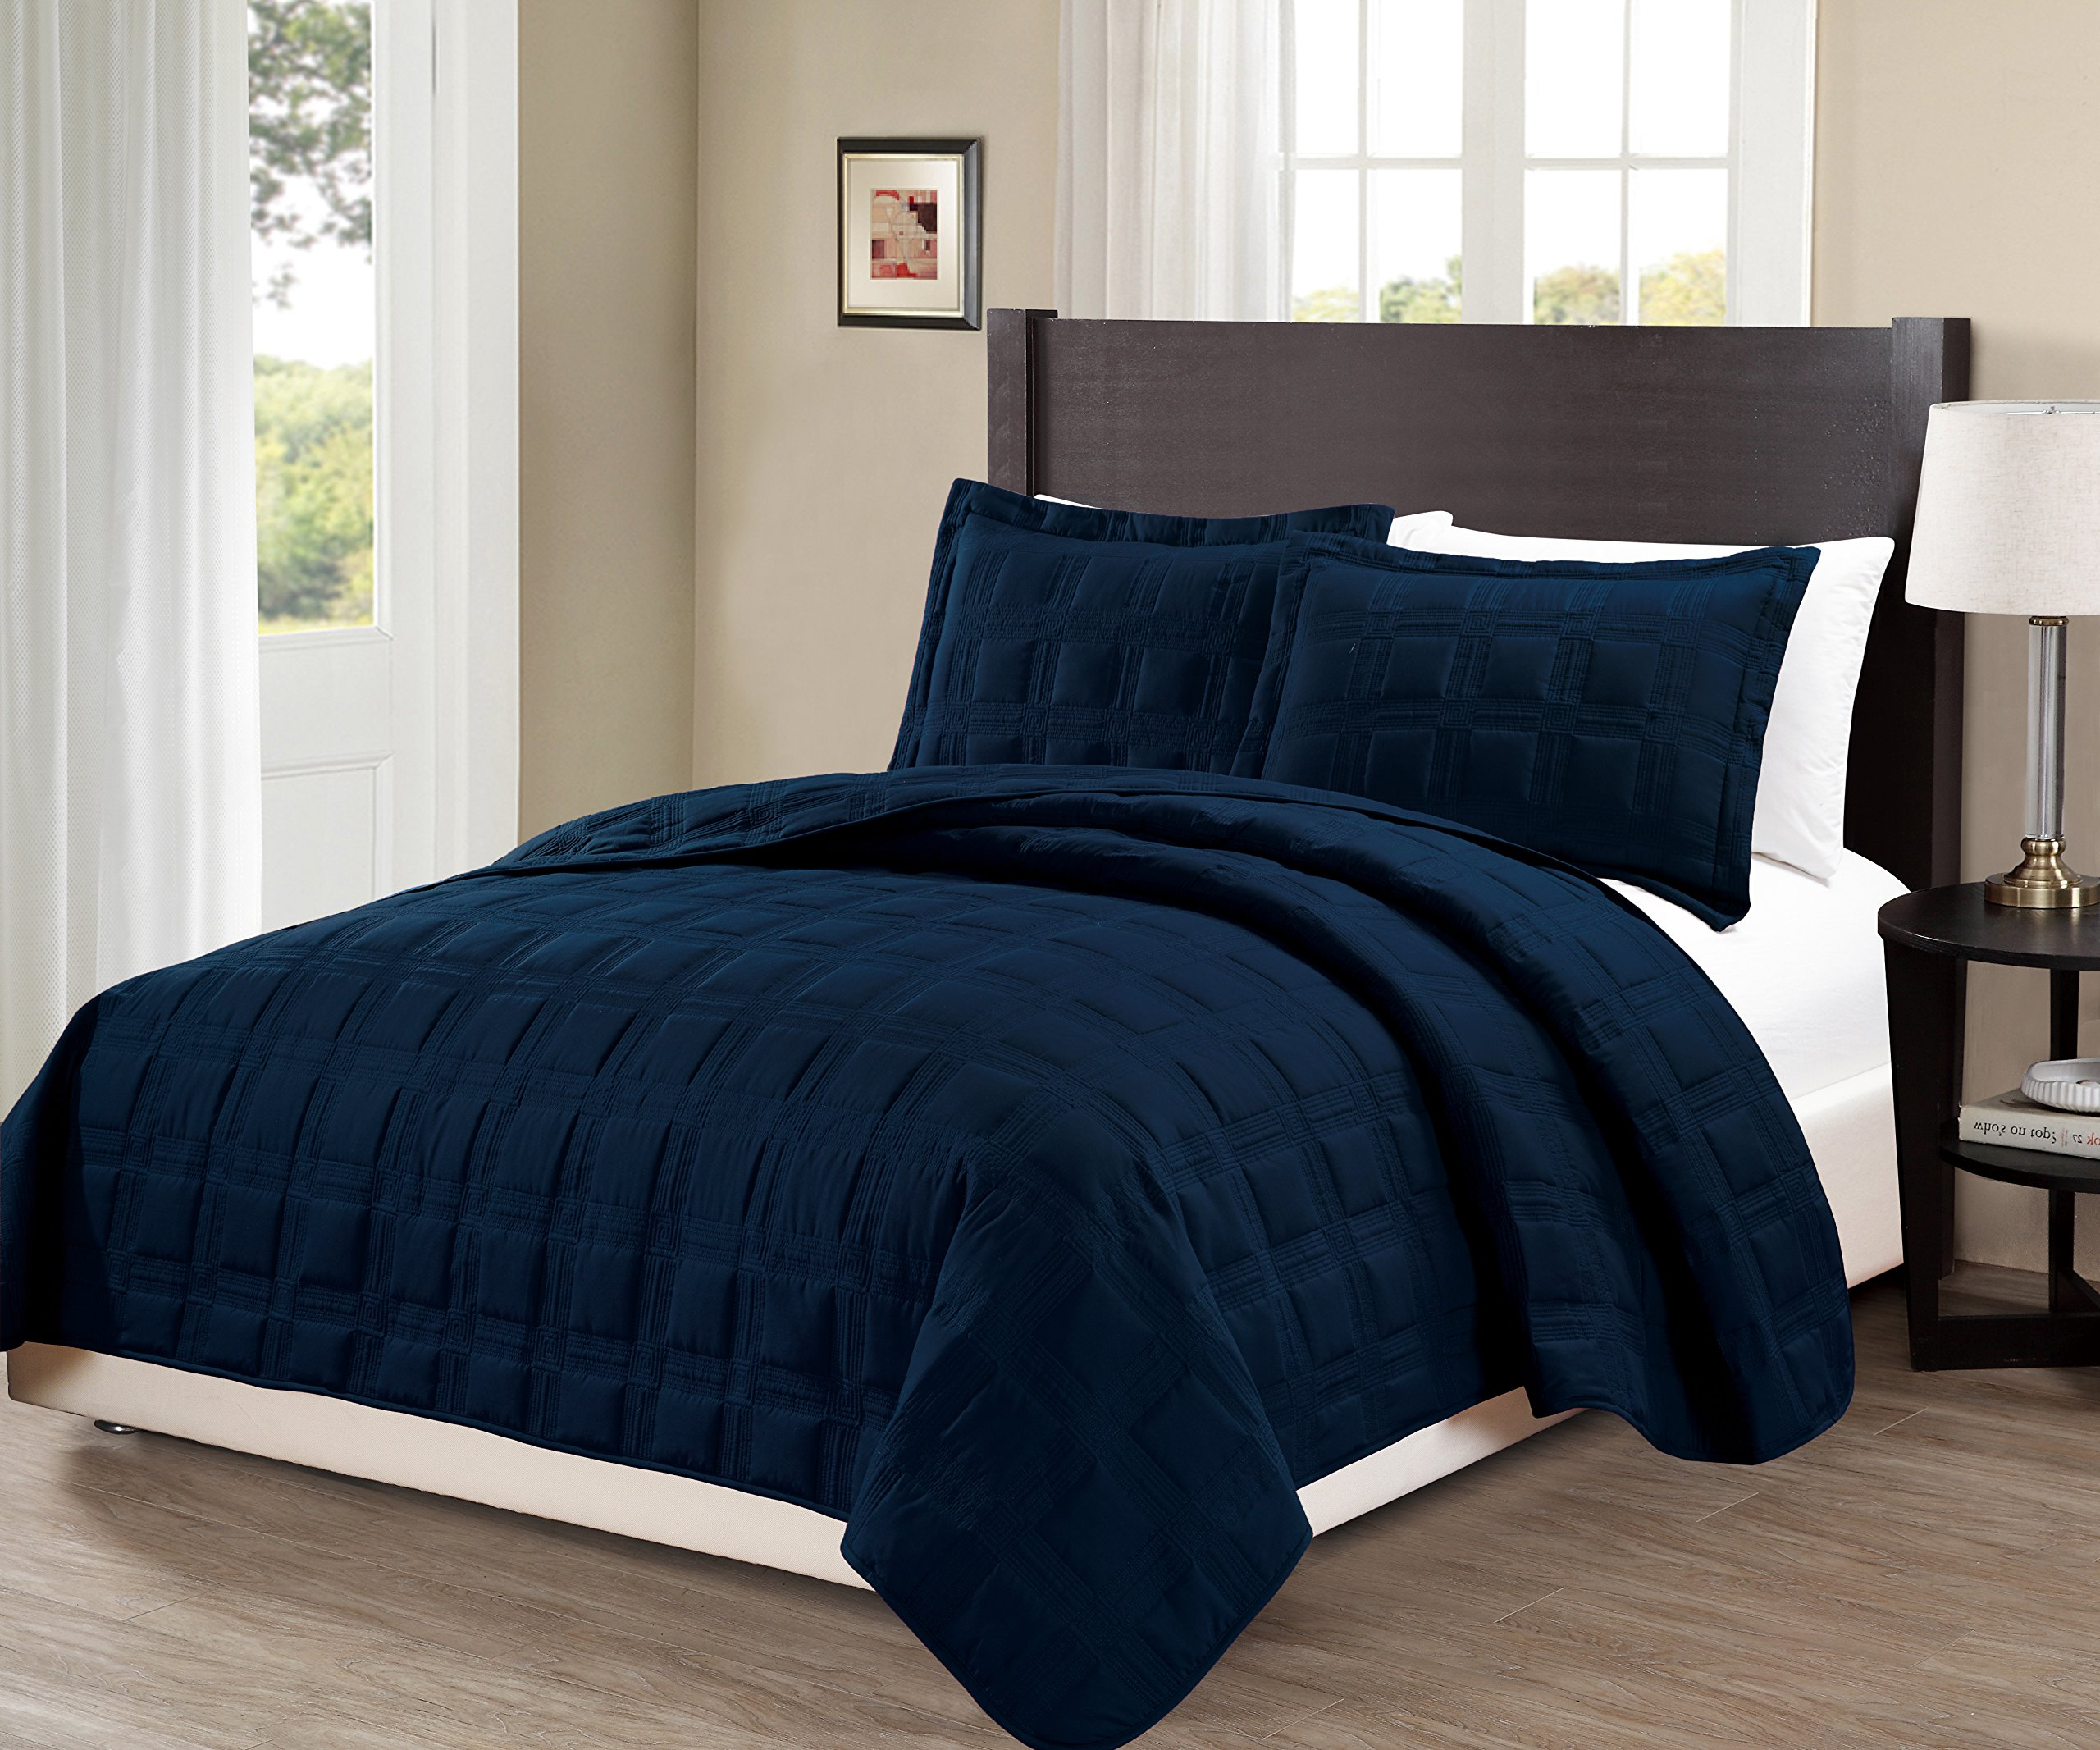 Mk Collection 3 Pc Full/Queen Target Over Size 100'' x 106'' Bedspread Bed-cover Quilted Embroidery Modern Geometric Solid Navy Blue New